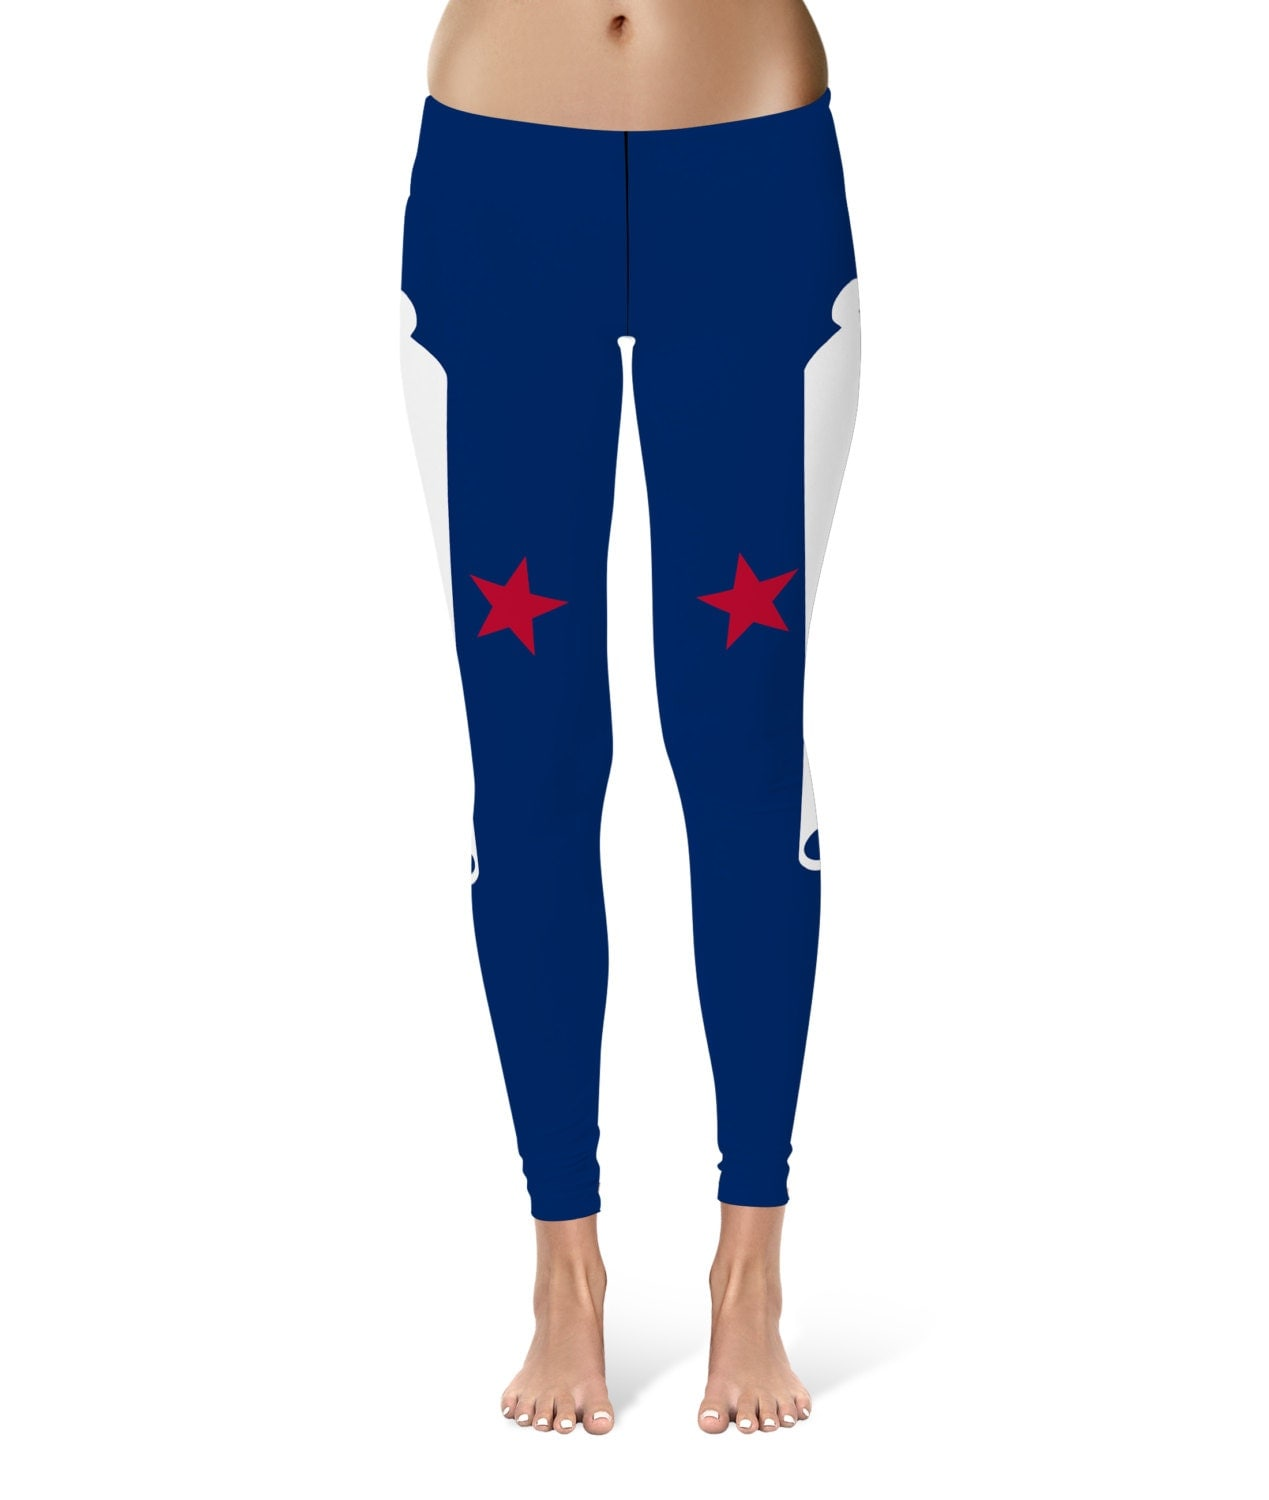 Come And Take It Flag Leggings - My State Shirts